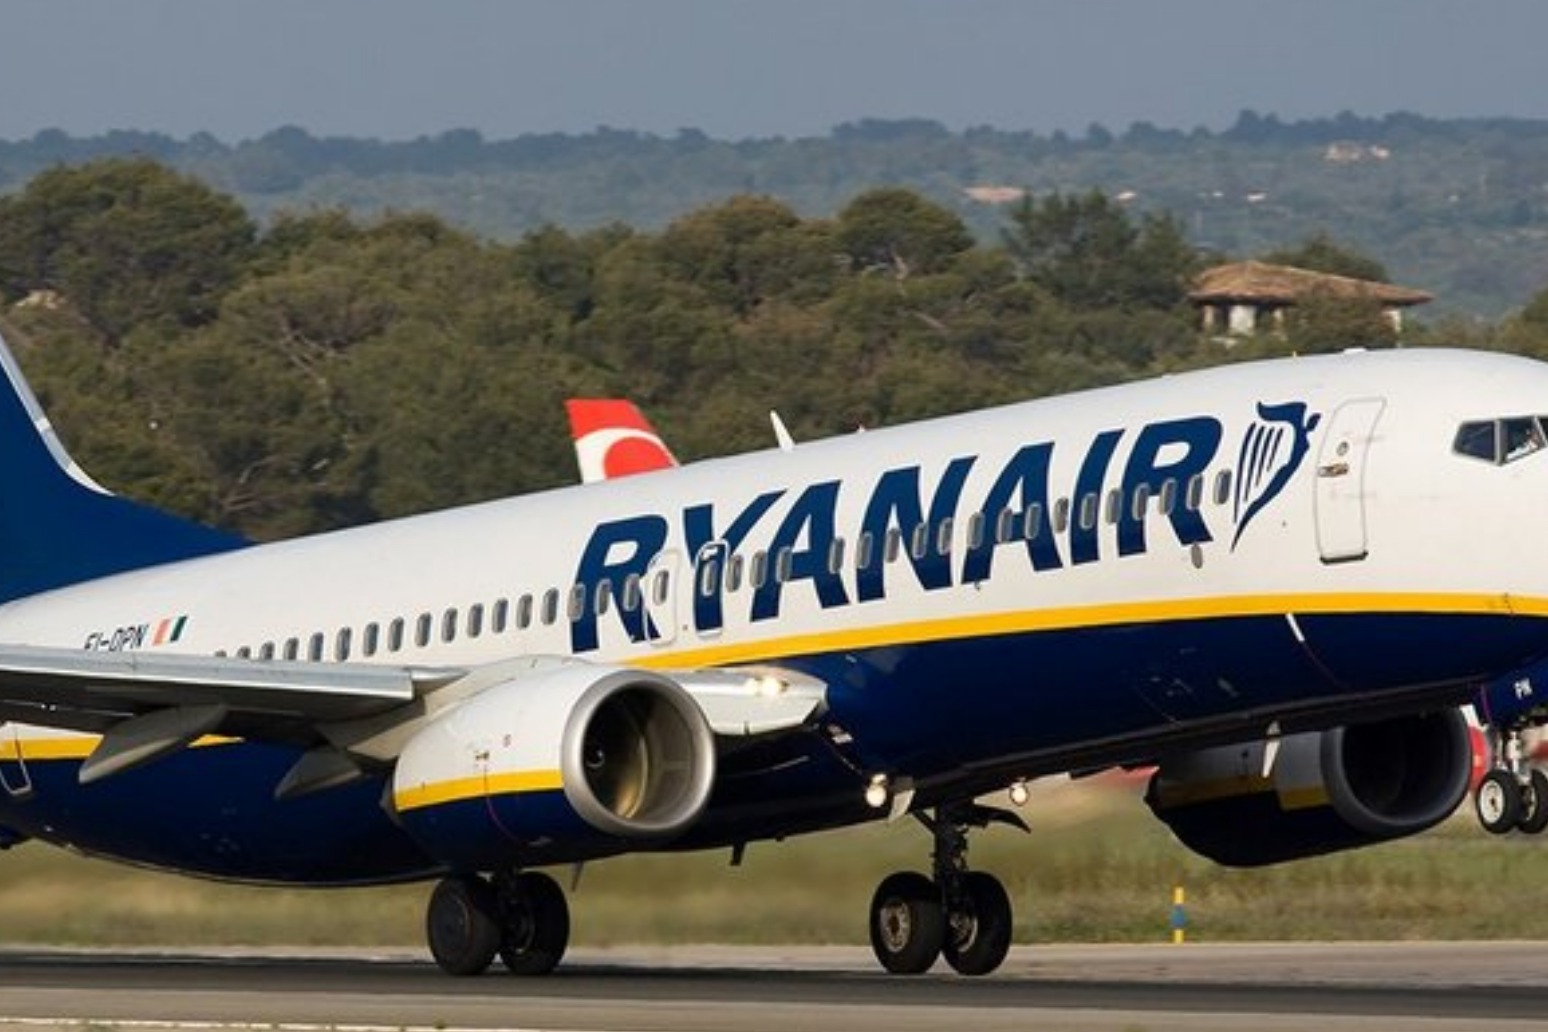 Hundreds of flights canceled as Ryanair pilots go on strike again